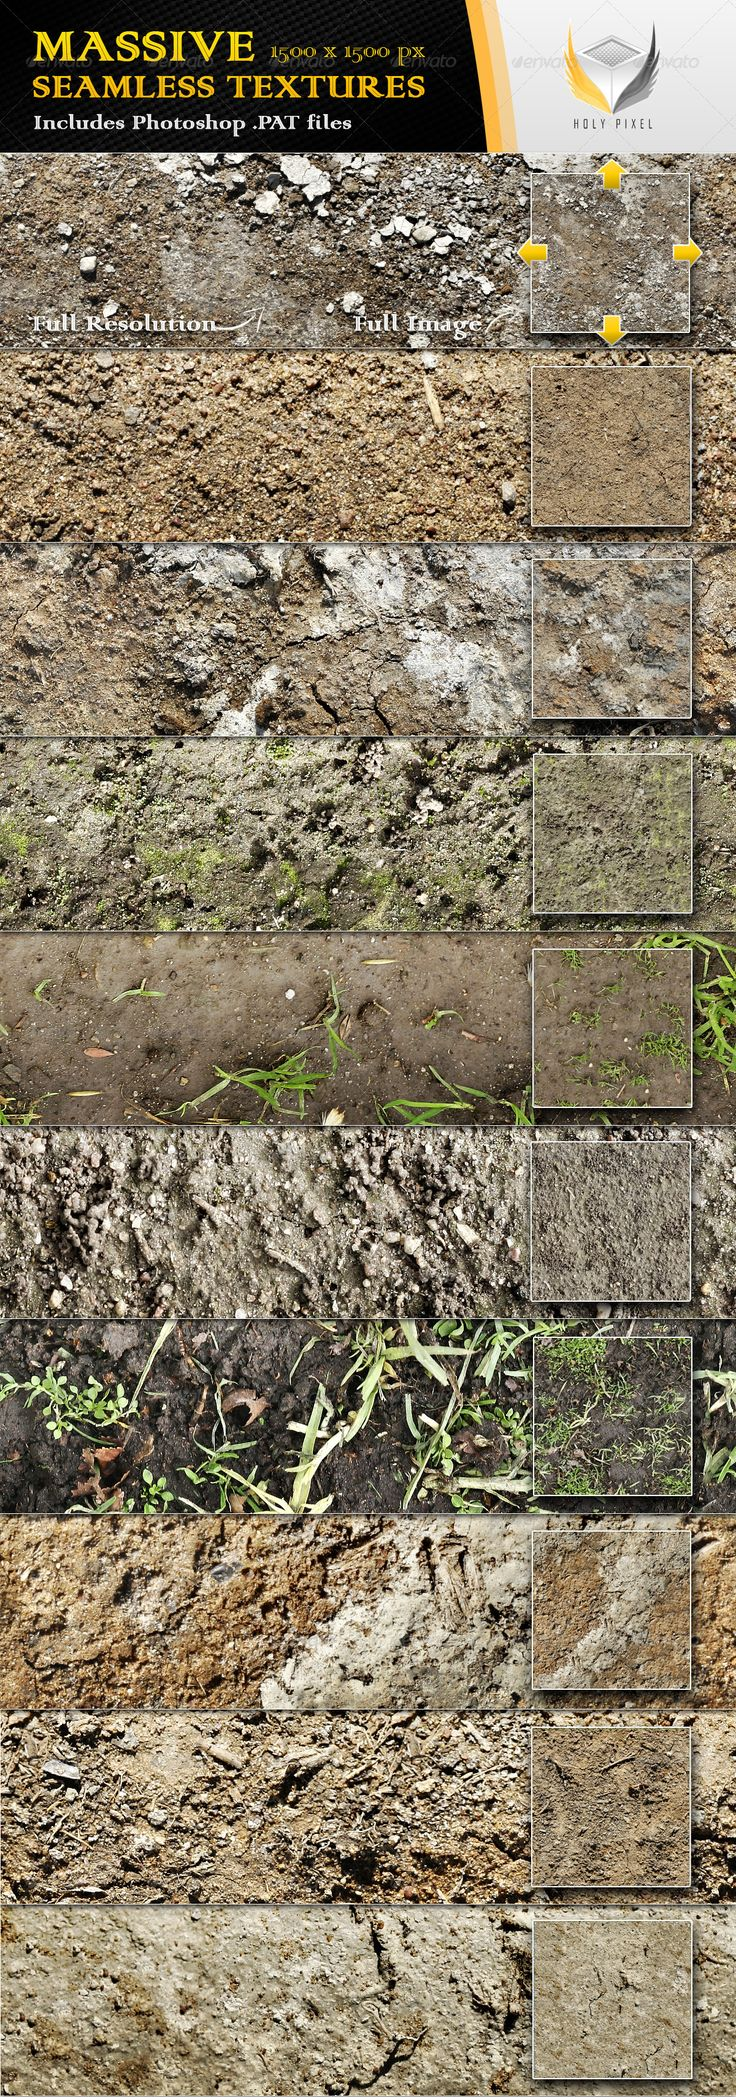 Unfinished brick wall texture for creating environment texture maps - 10 Seamless Dirt And Soil Textures